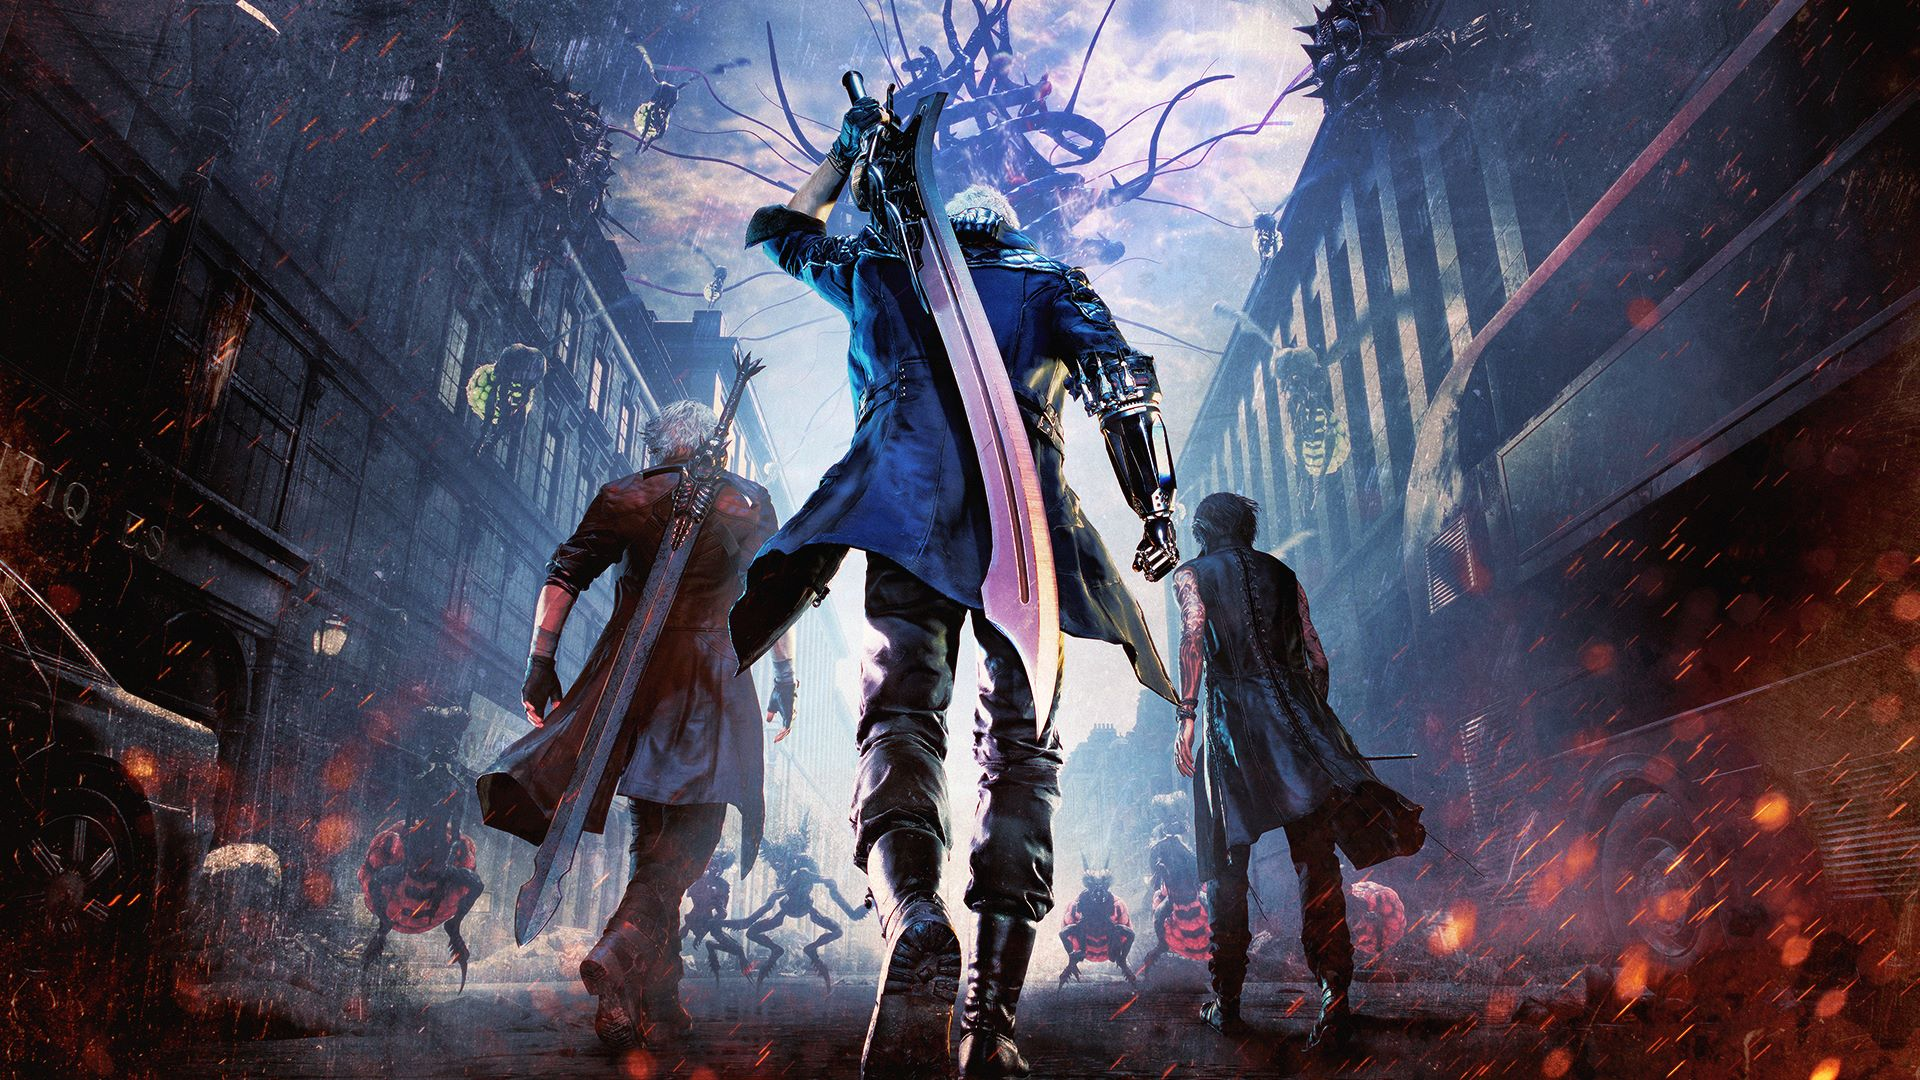 The future of Devil May Cry is bright again according to Capcom screenshot